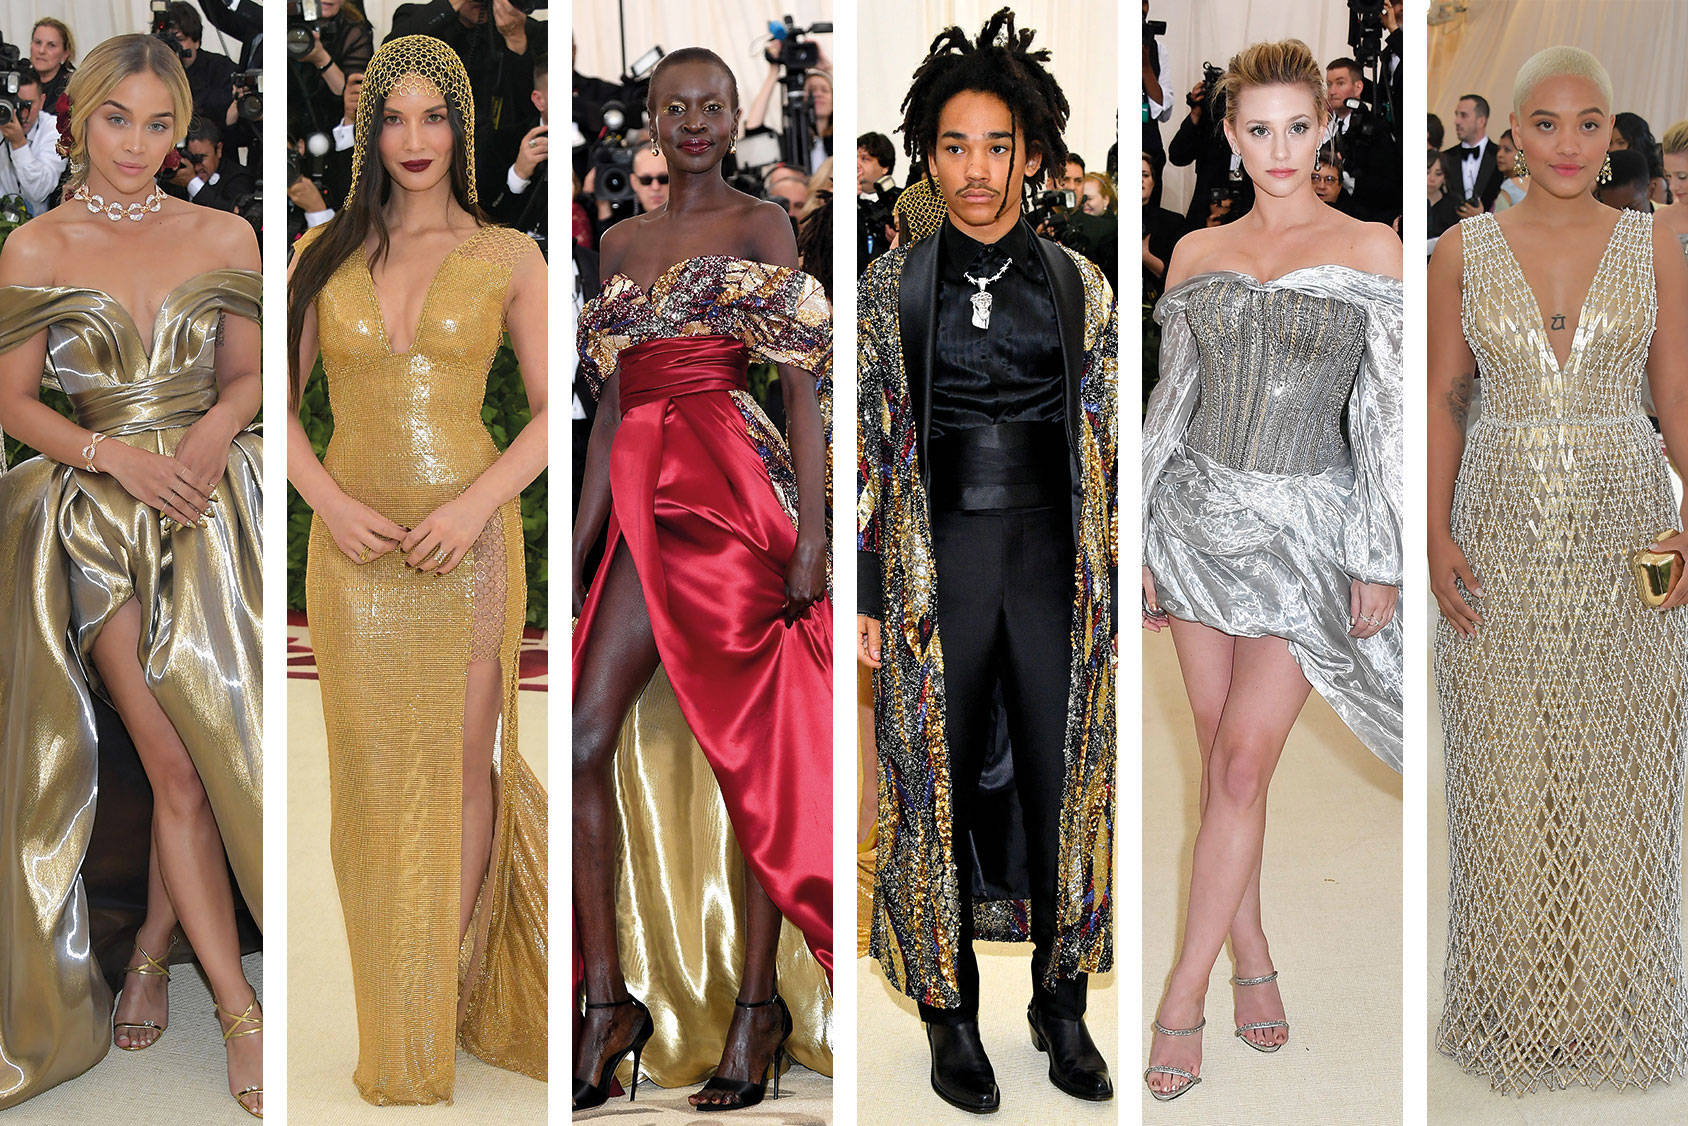 These celebs wore H&M to the Met Gala | H&M GB